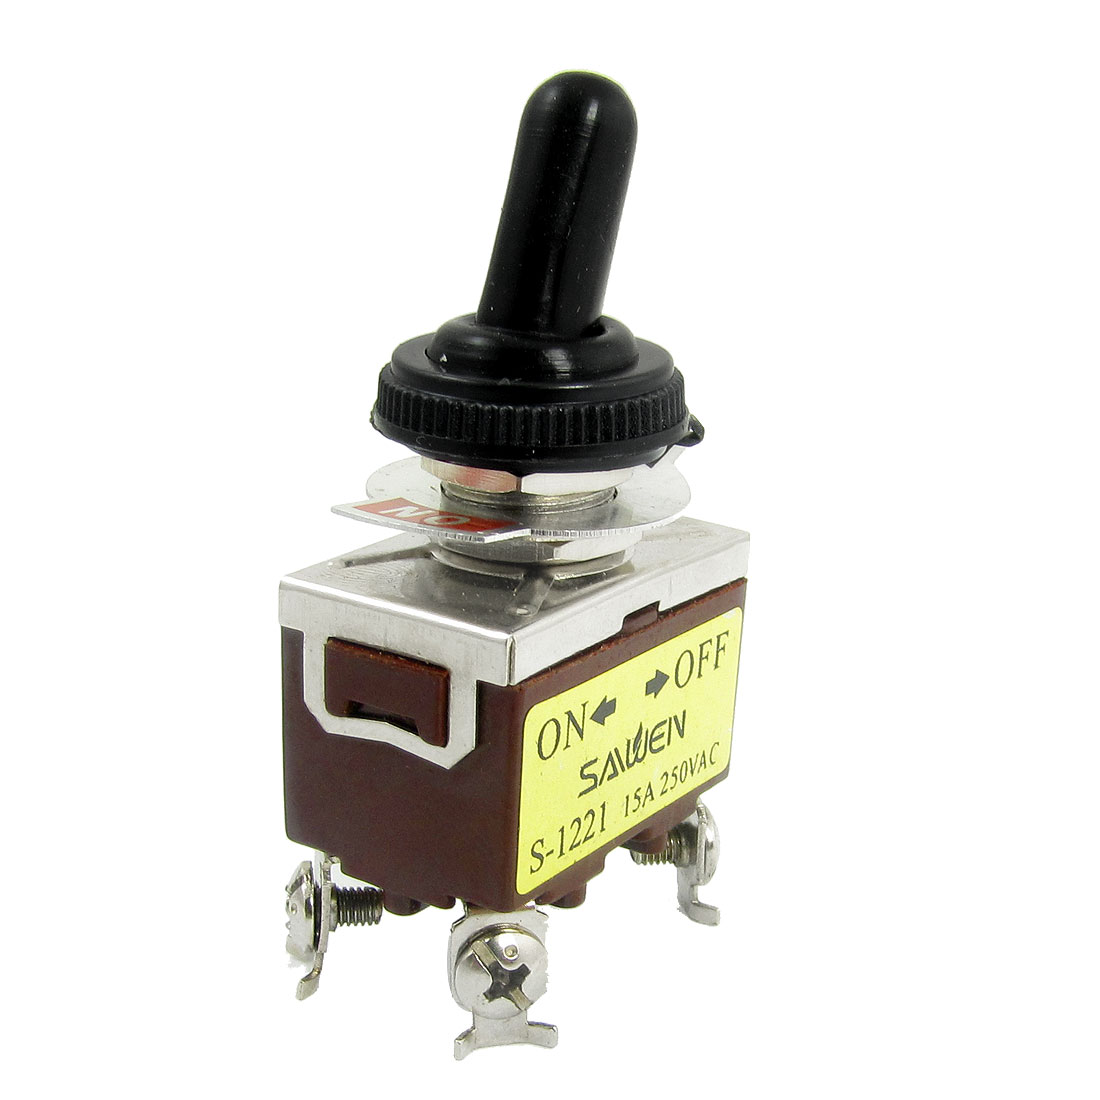 AC 250V 15A Amps DPST On/Off 2 Position 4 Screw Terminals Toggle Switch with Waterproof Boot